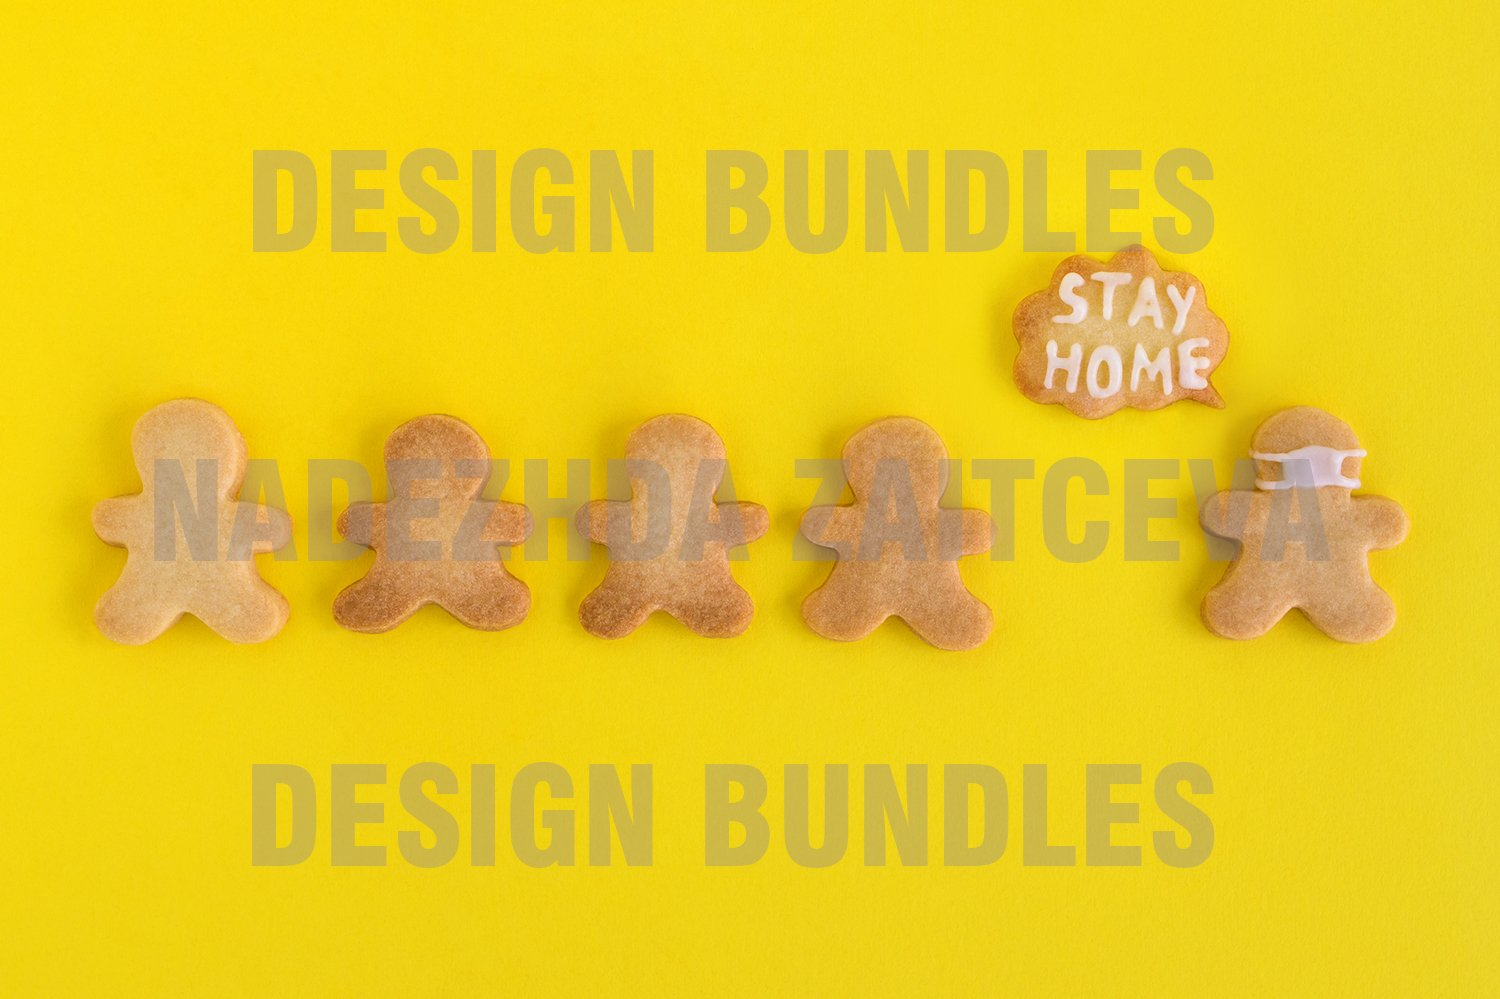 Sweet shortbread with white glaze on yellow background example image 1